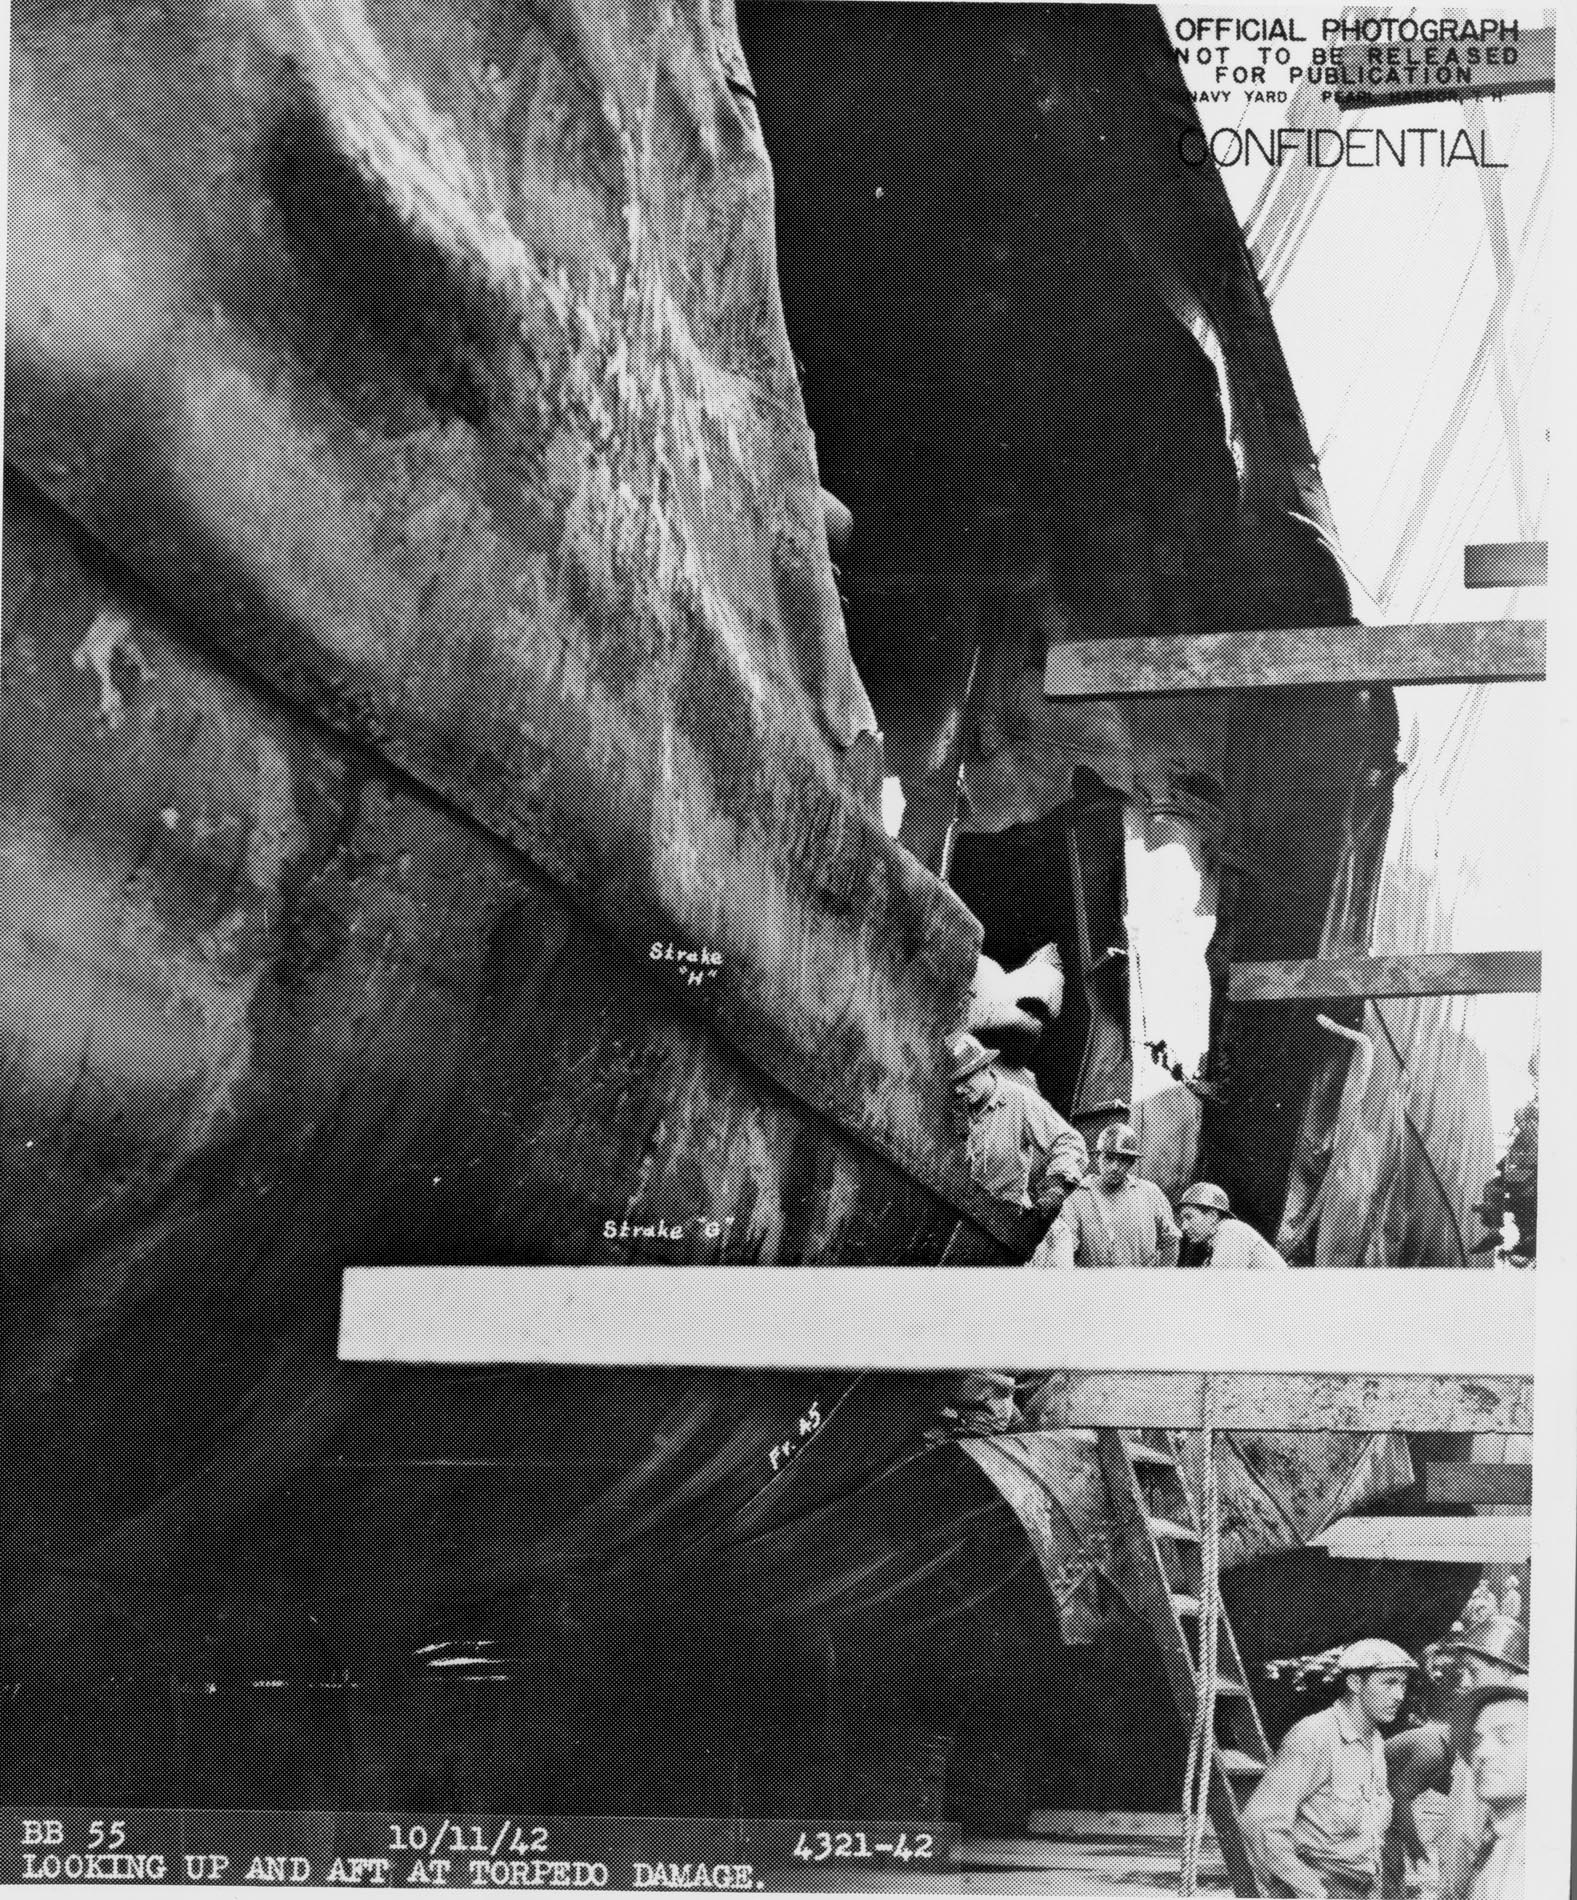 Torpedo damage May Programming Aboard the Battleship NORTH CAROLINA